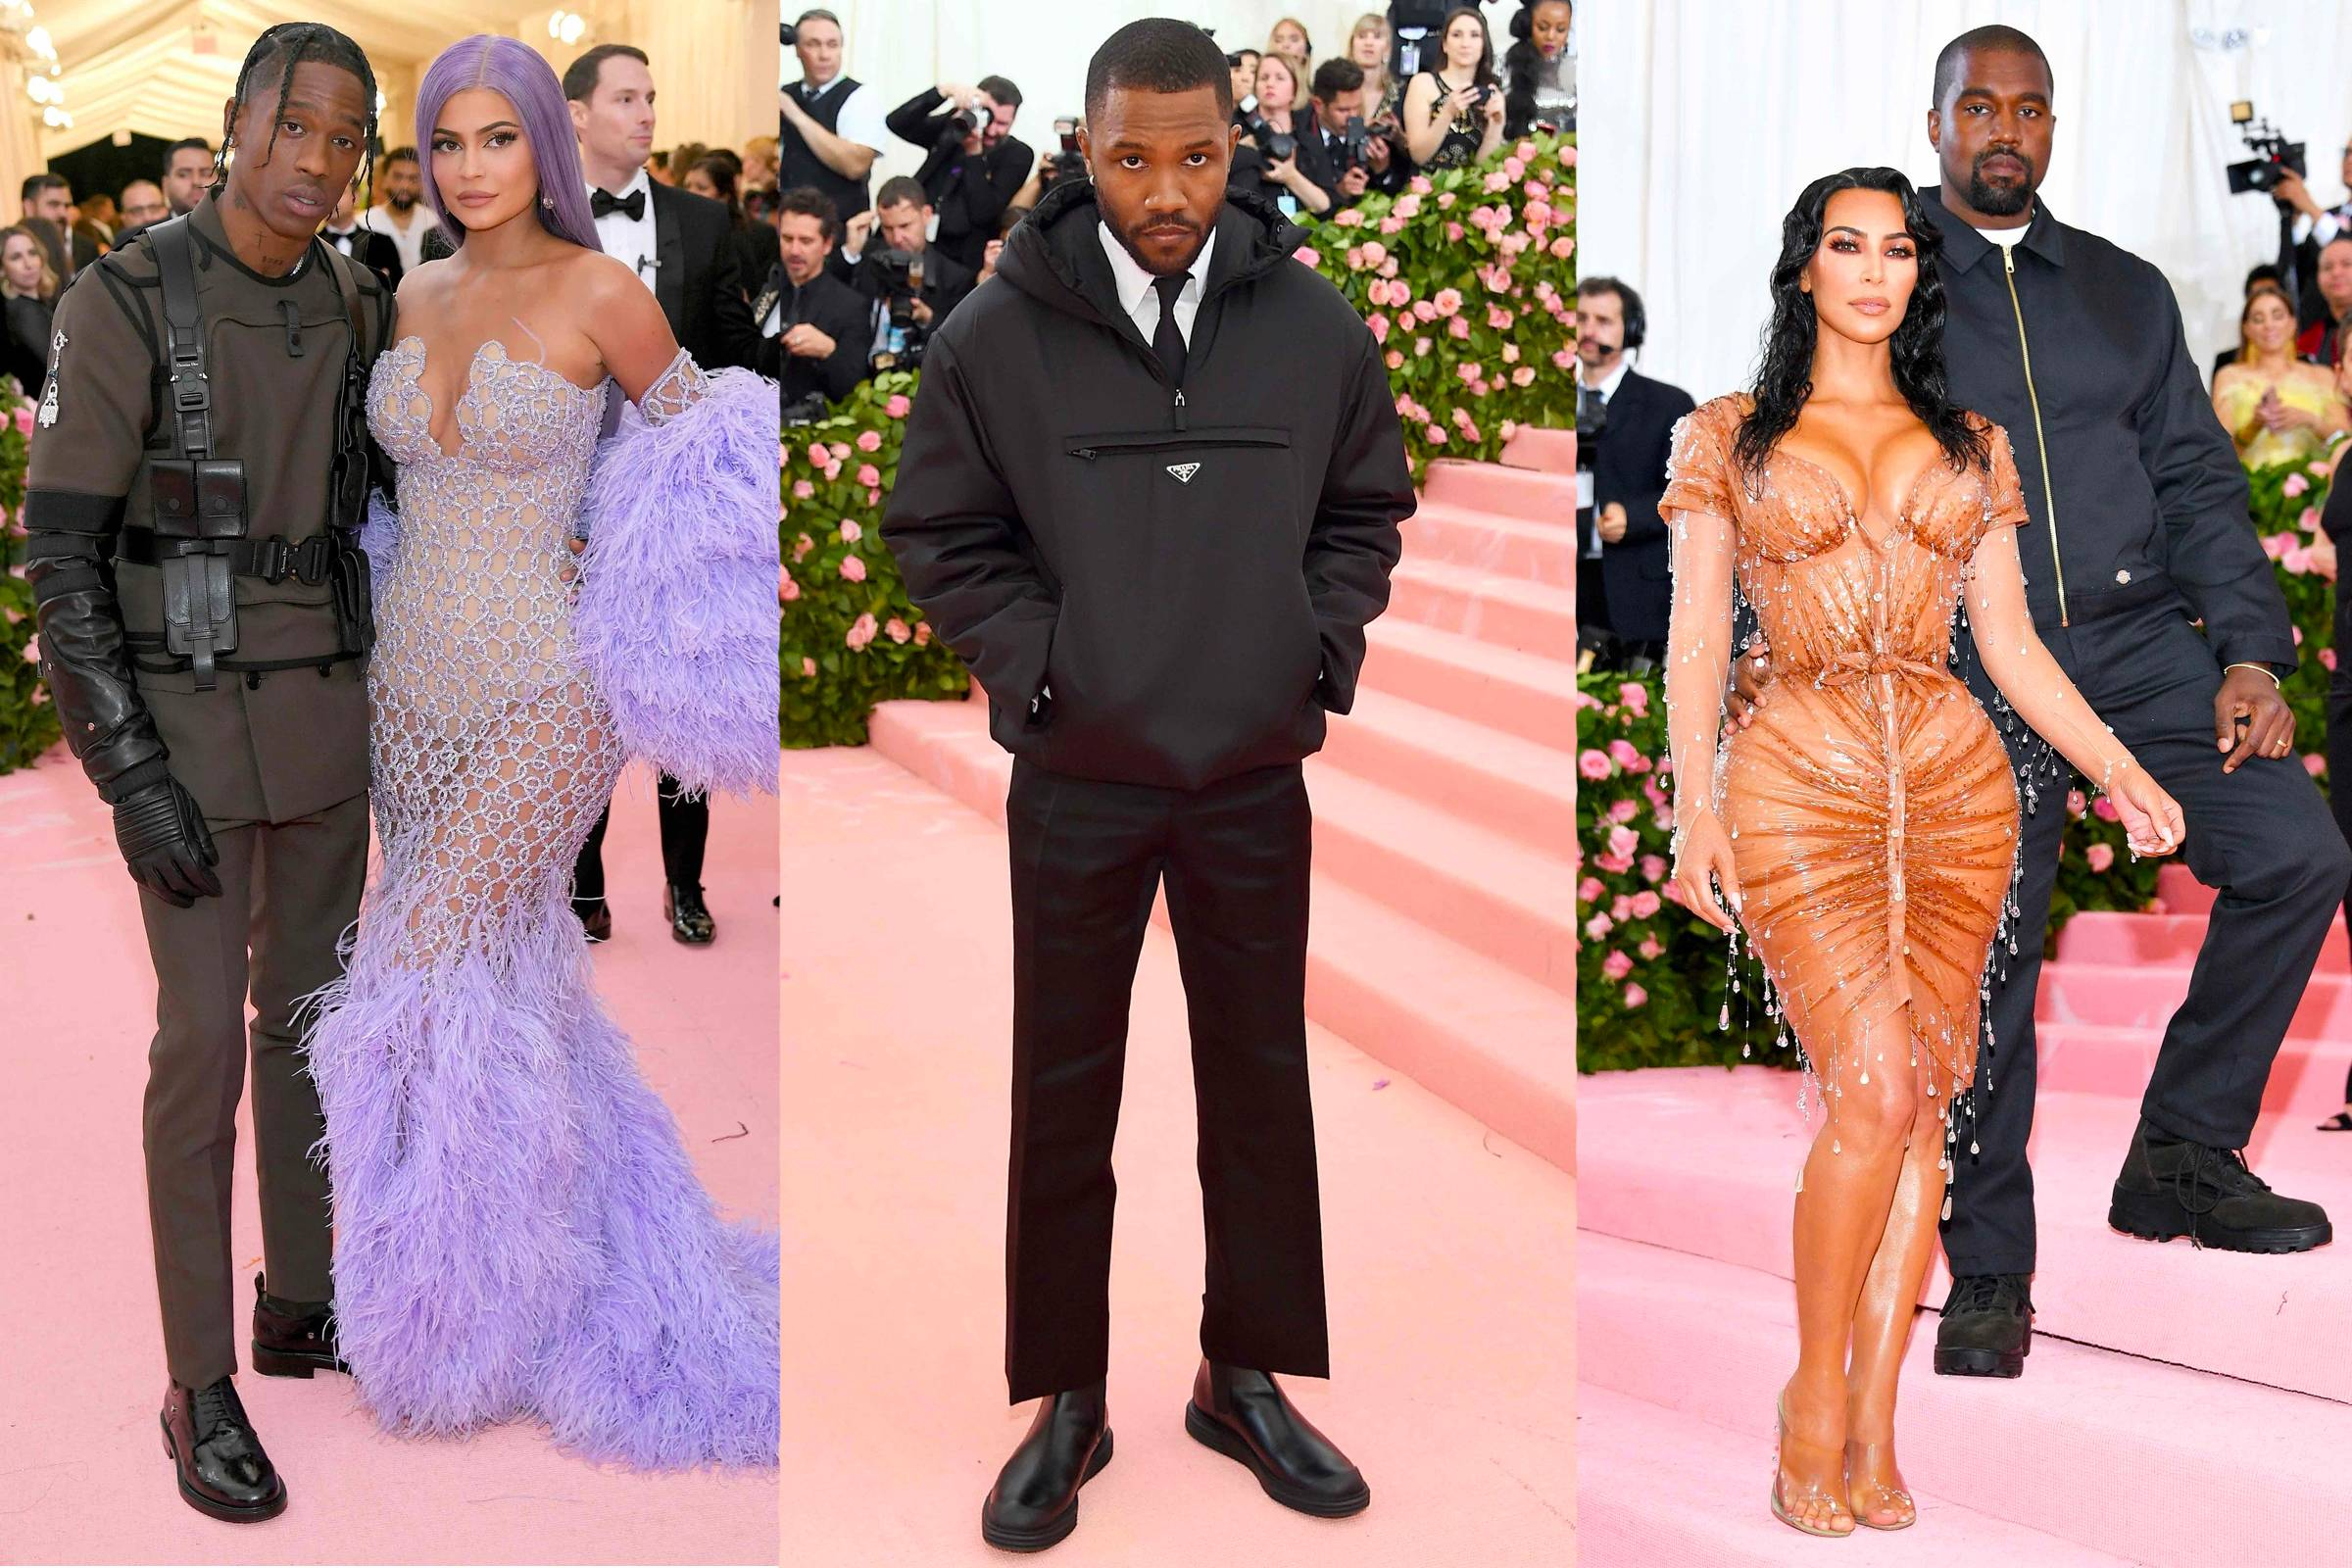 The Best (and Worst) Looks from the 2019 Met Gala